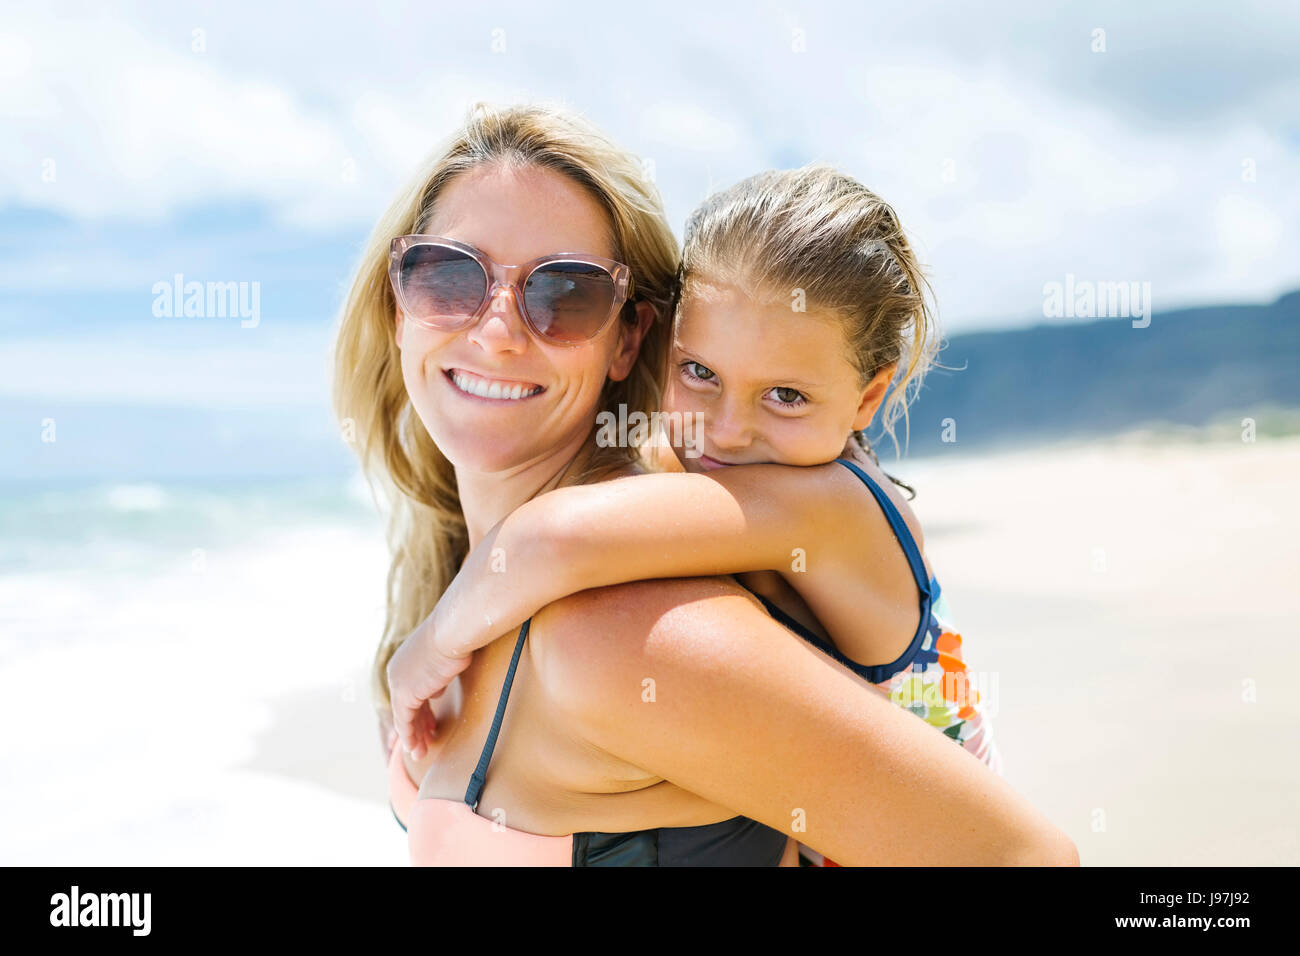 USA, Hawaii, Kauai, Mother with daughter (6-7) playing on beach - Stock Image